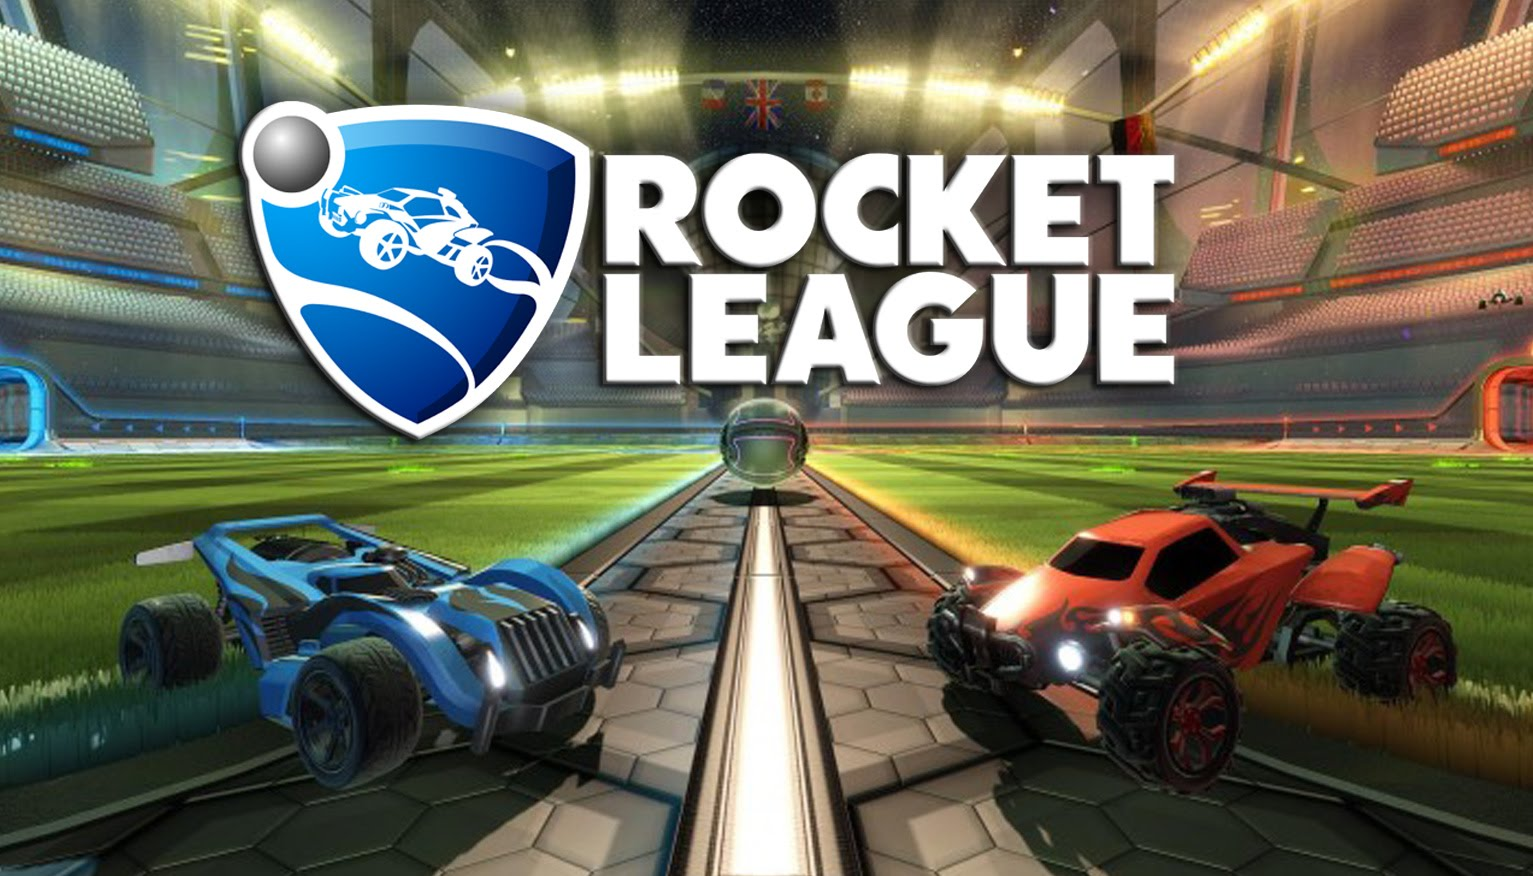 Rocket League game reaches 30 million user accounts